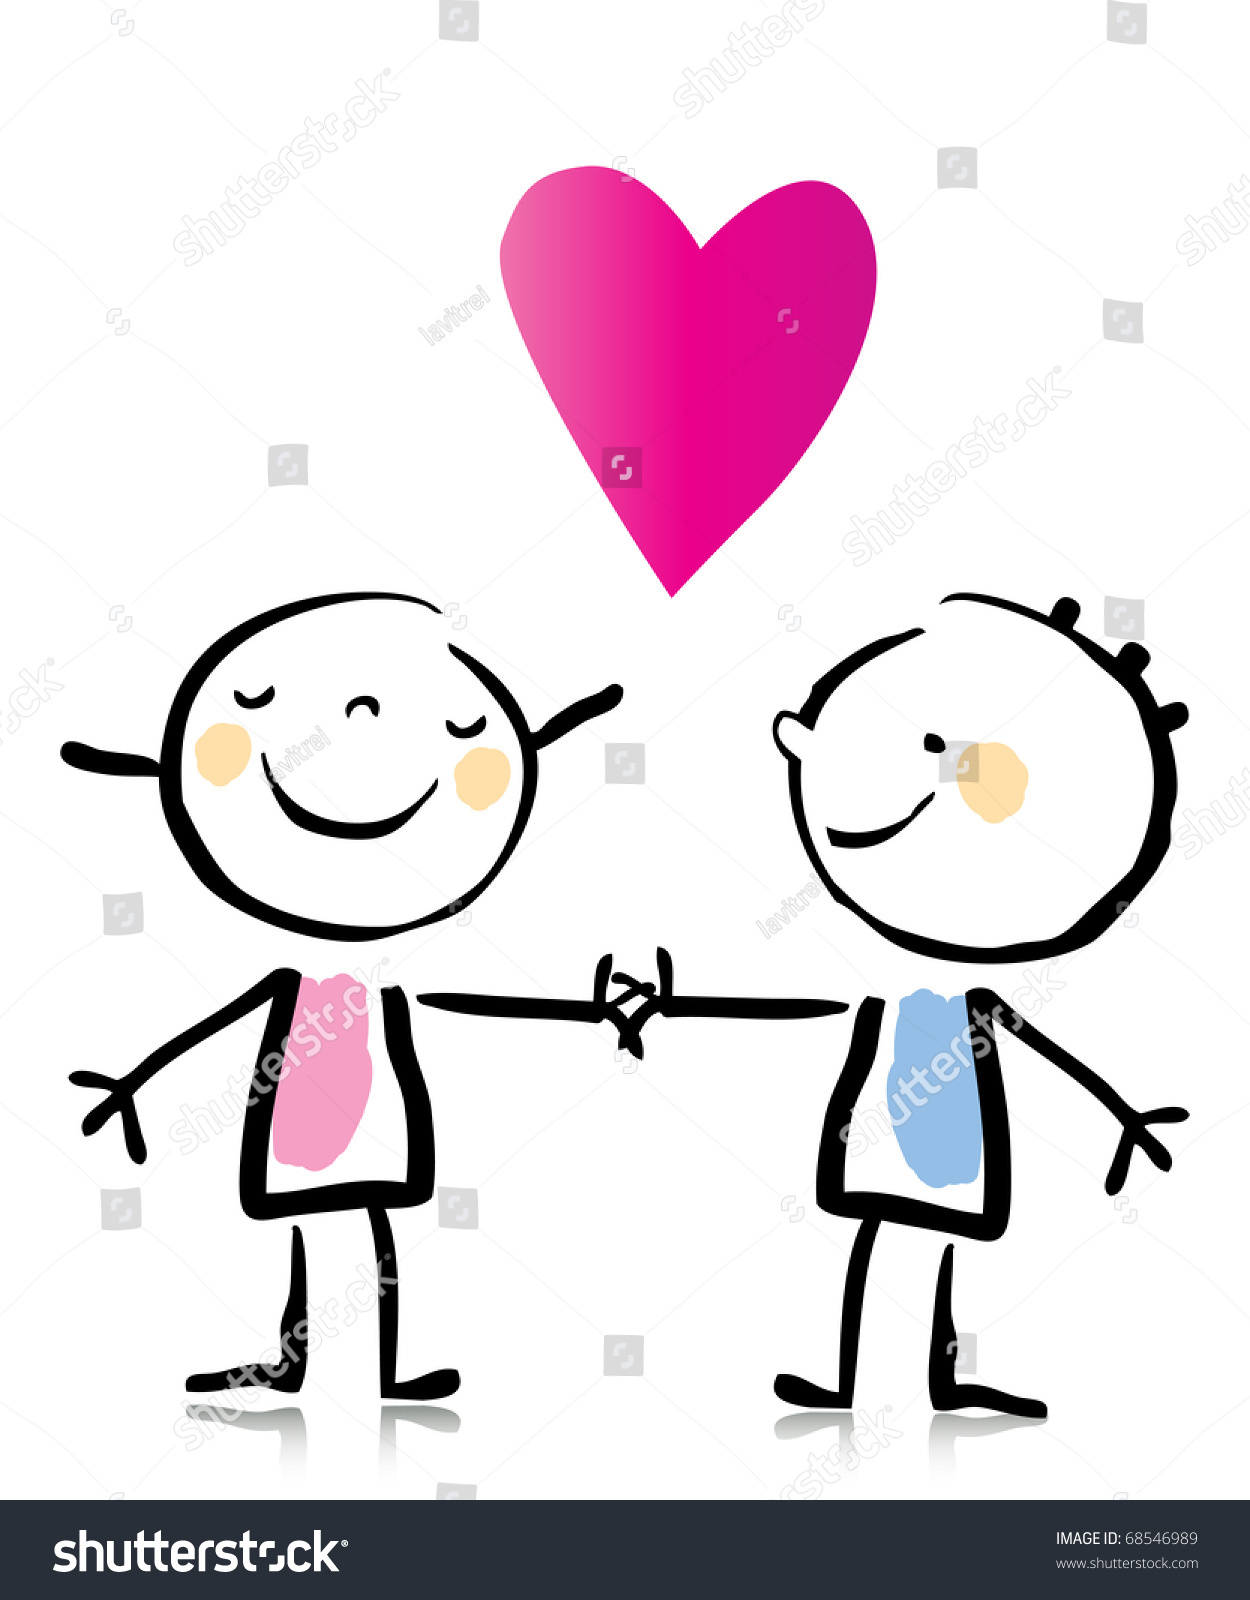 Valentines day two people in love holding hands cartoon childrens drawing style series see